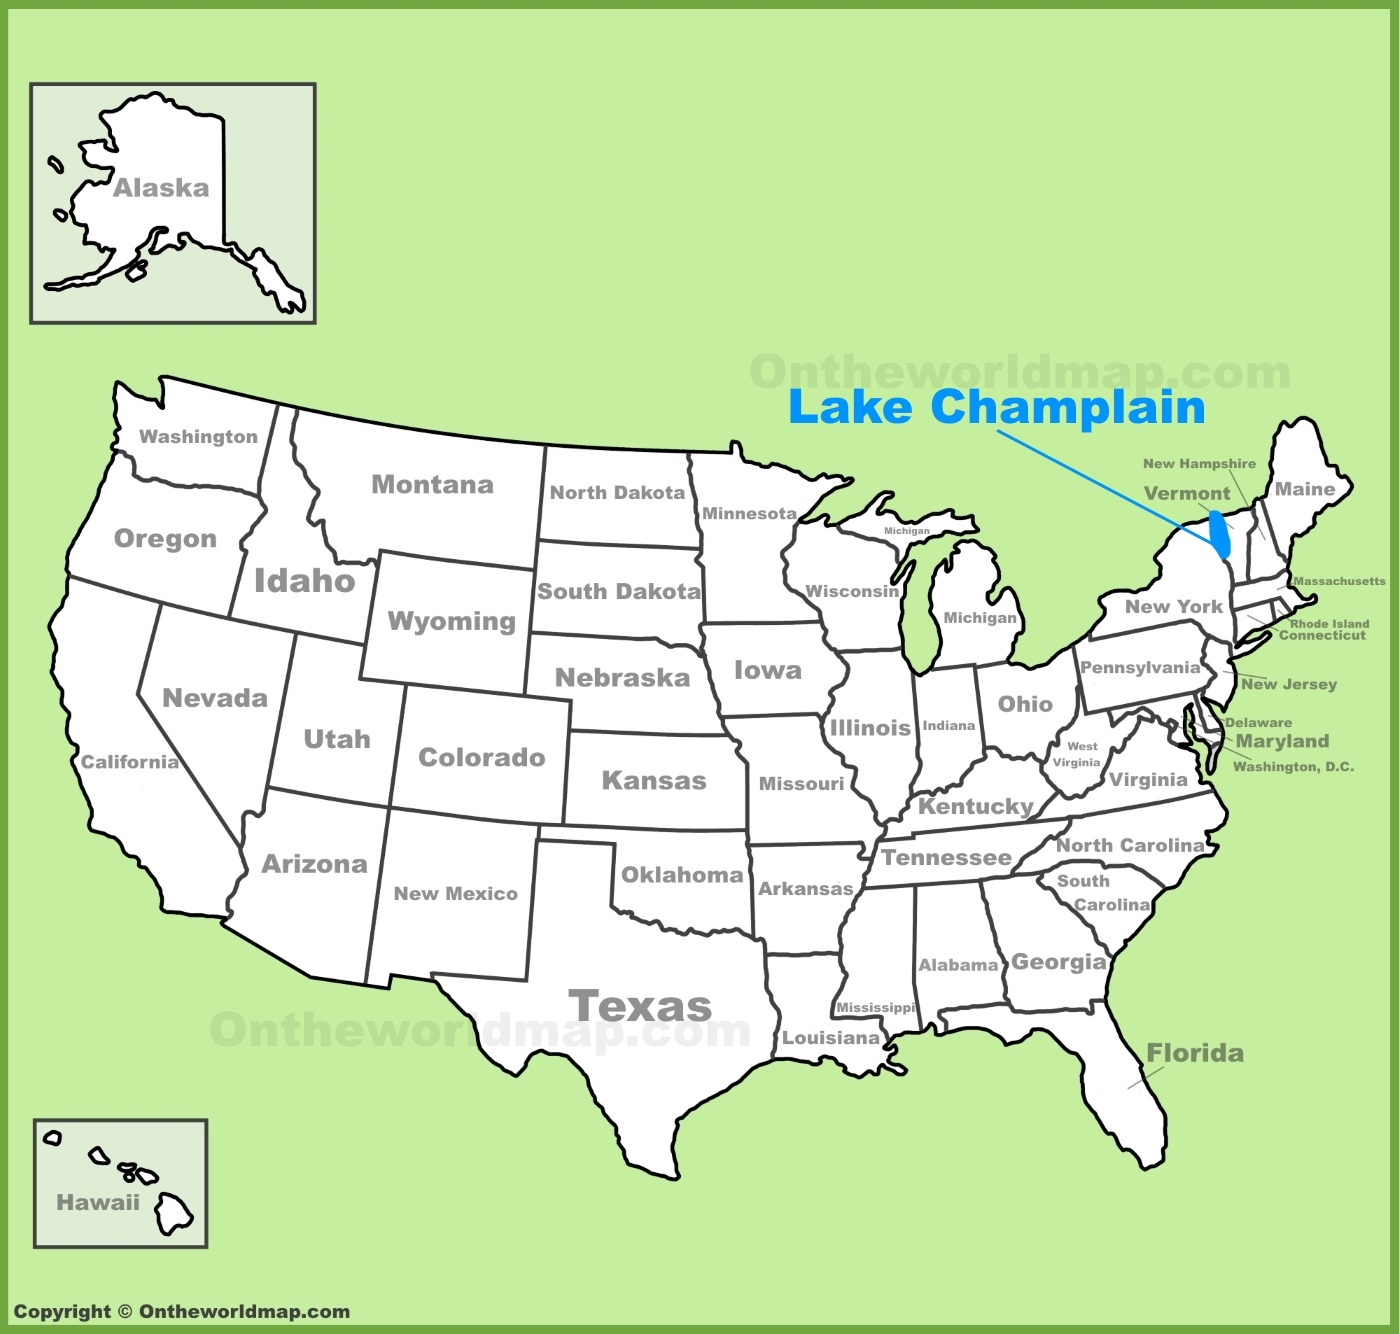 Lake Champlain Map Lake Champlain Maps | Maps of Lake Champlain